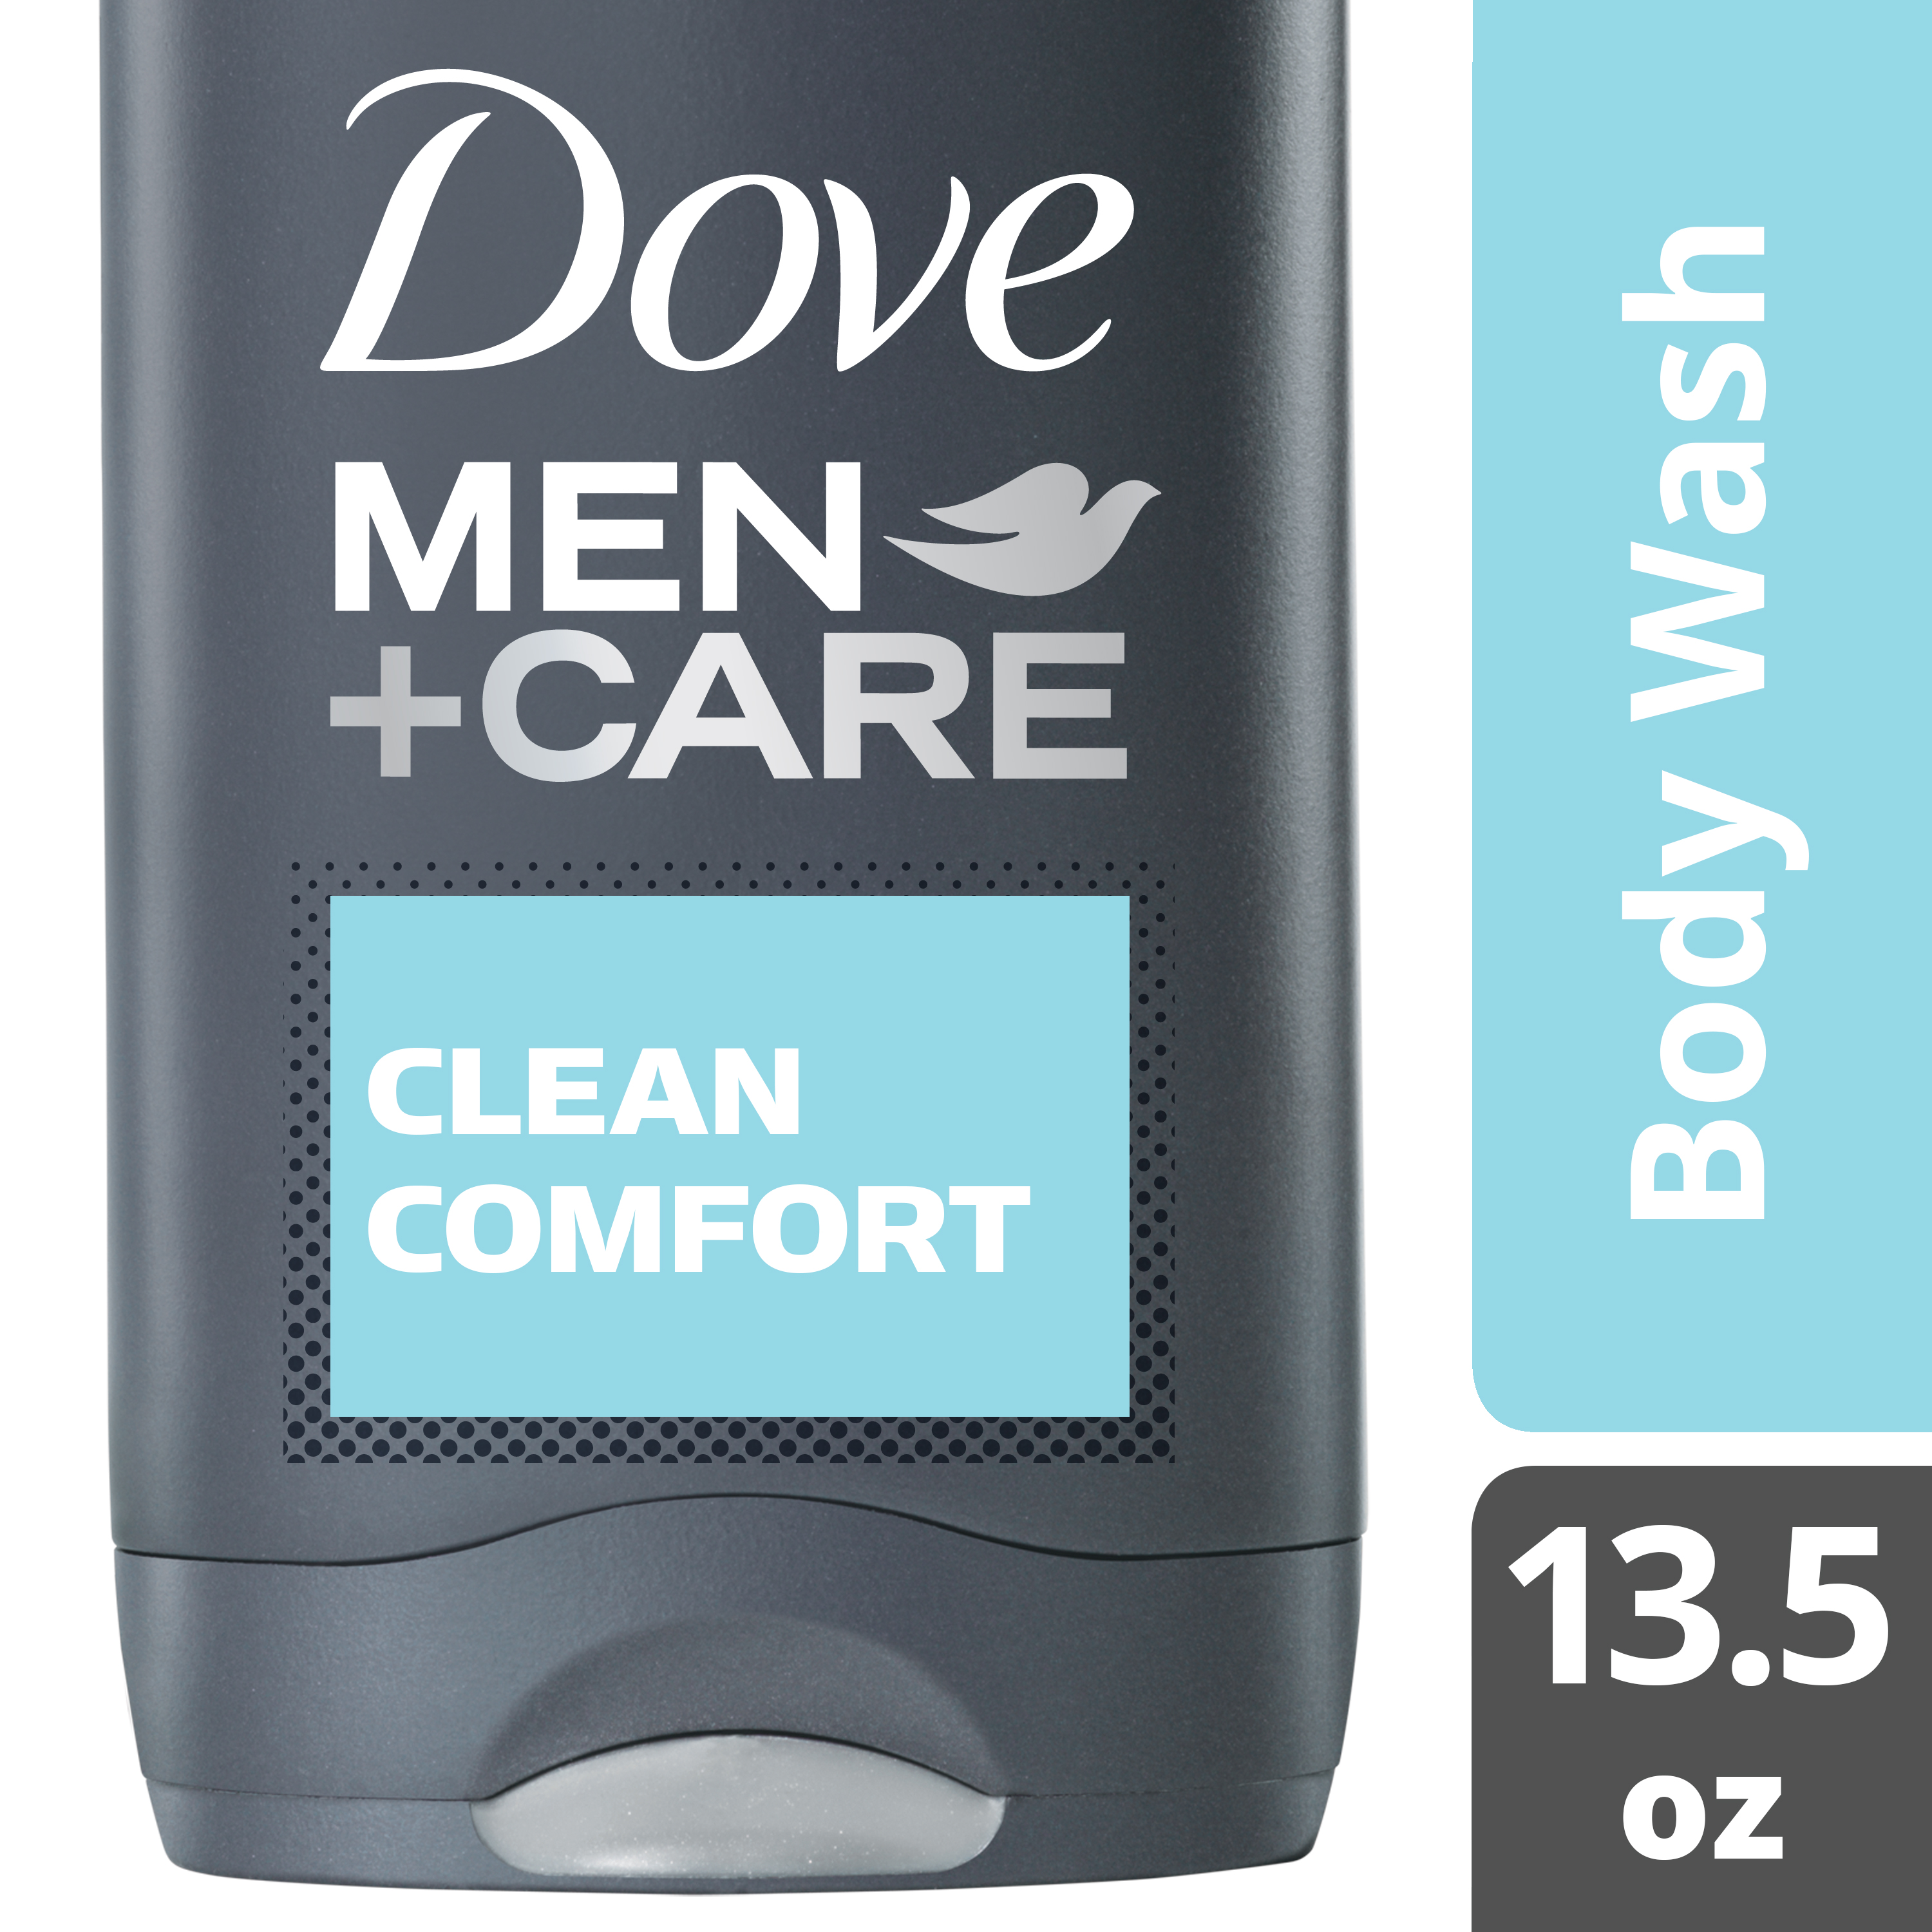 Dove Men+Care Clean Comfort Body and Face Wash, 13.5 fl oz - Walmart.com